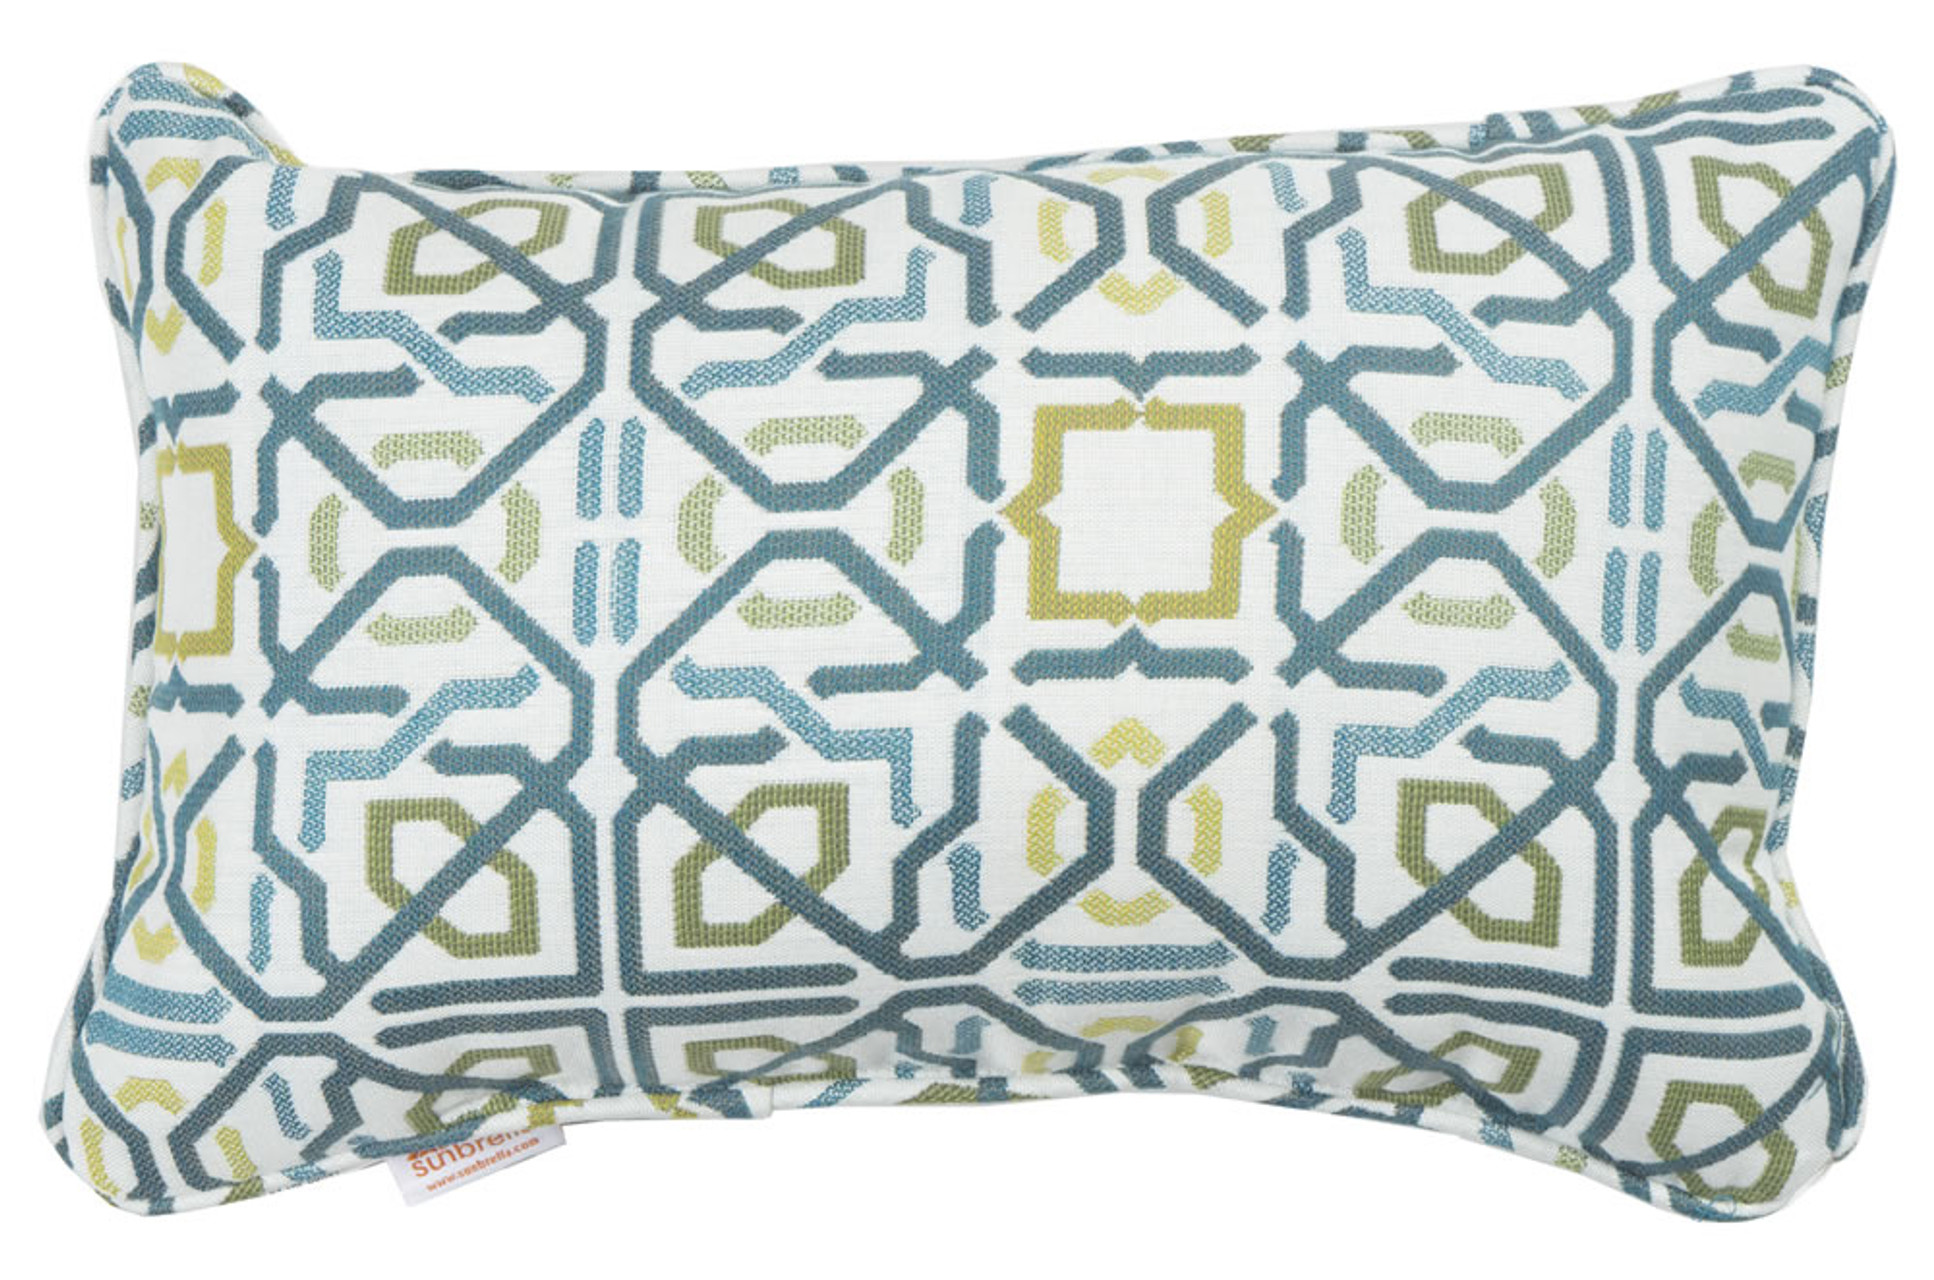 greensandblues the fabric i at for cushions covers what throw pillows sunbrella market saw pillow